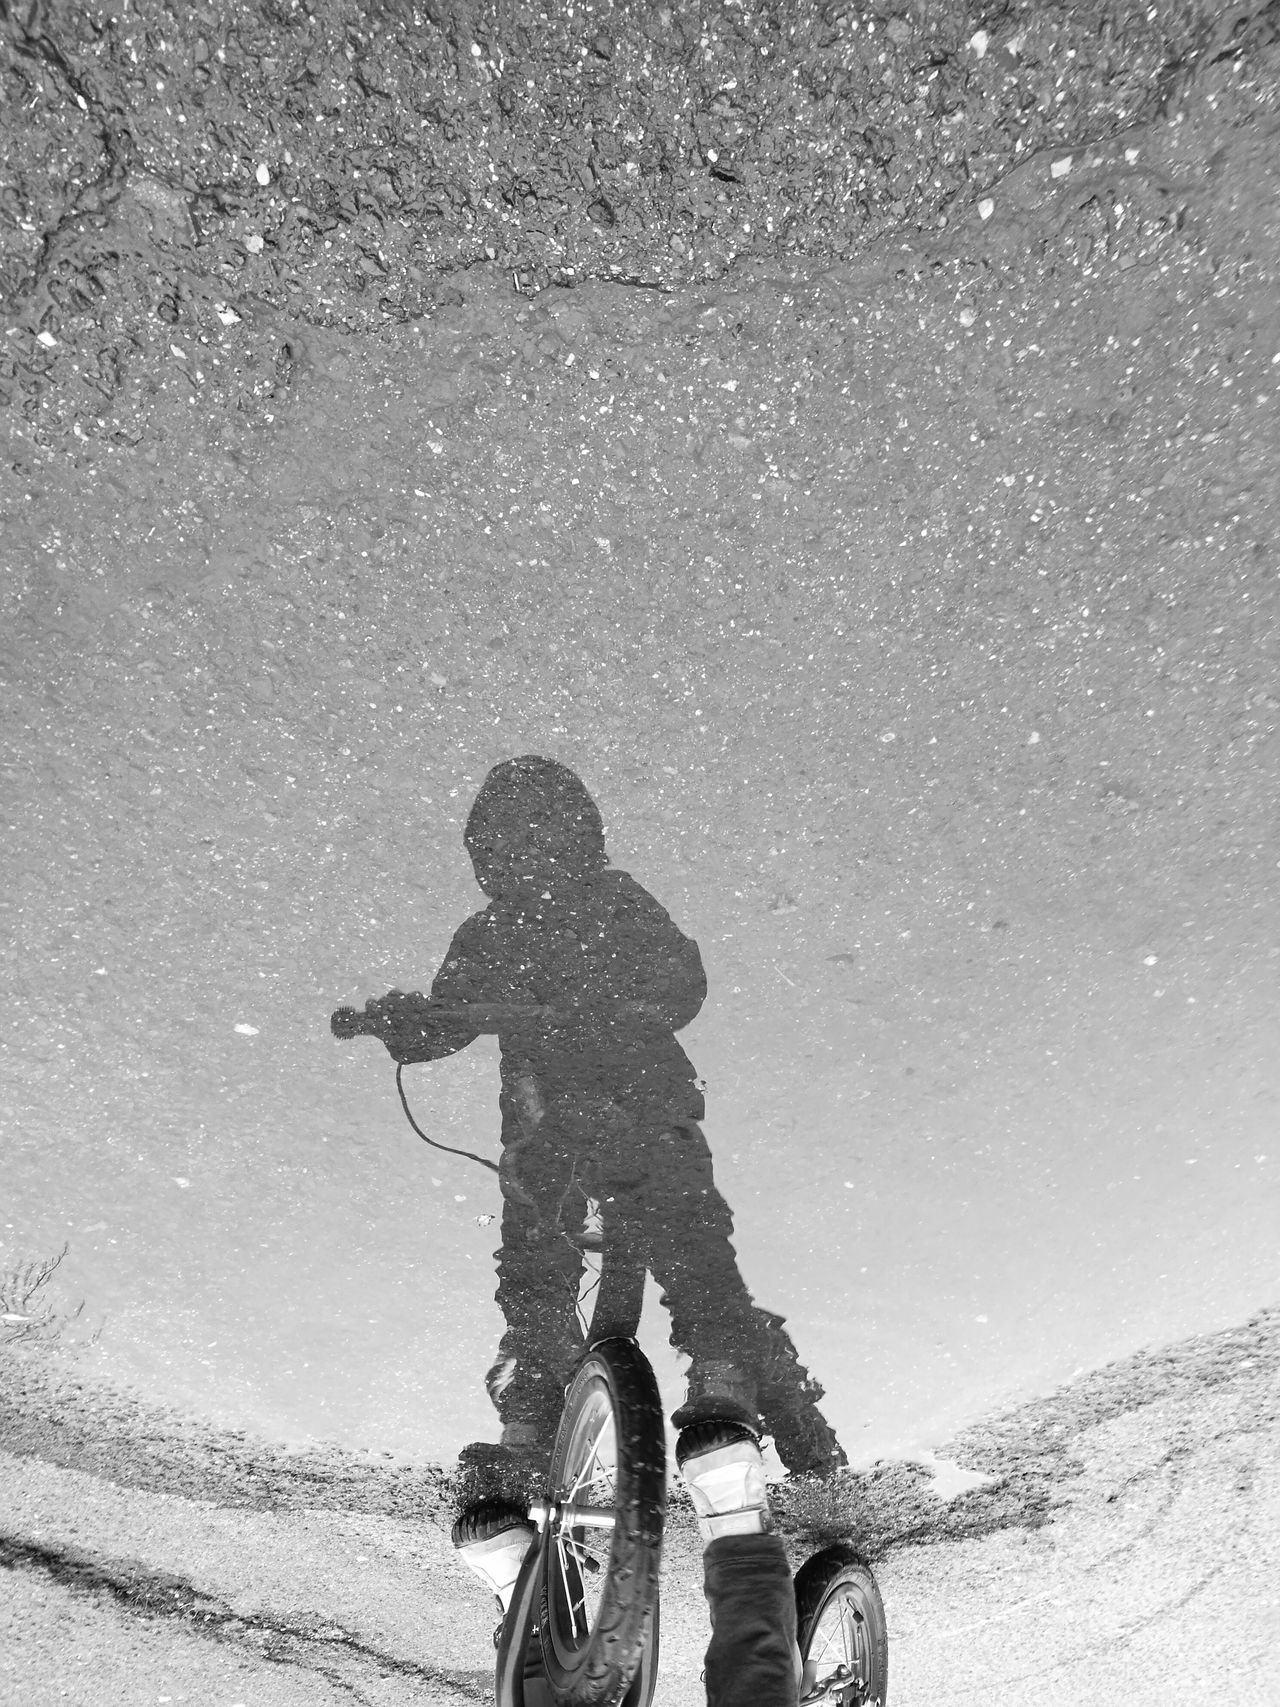 Reflection One Person Real People Concrete Floor Puddles bicycle monochrome Up Side Down Three Quarter Length Outdoors People child Day shadow